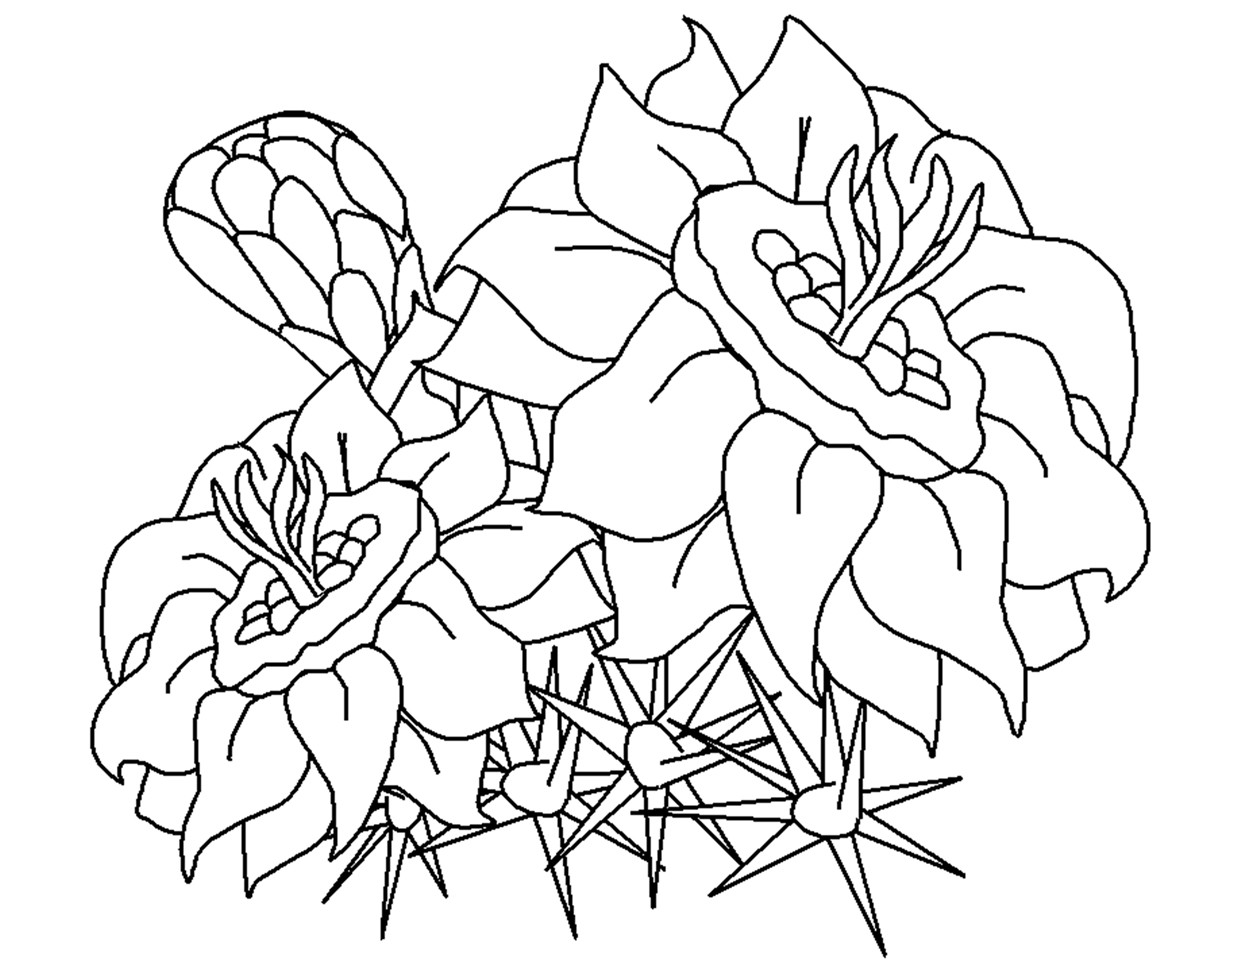 Free Carnation Printable Coloring Sheets  Free Printable Flower Coloring Pages For Kids Best